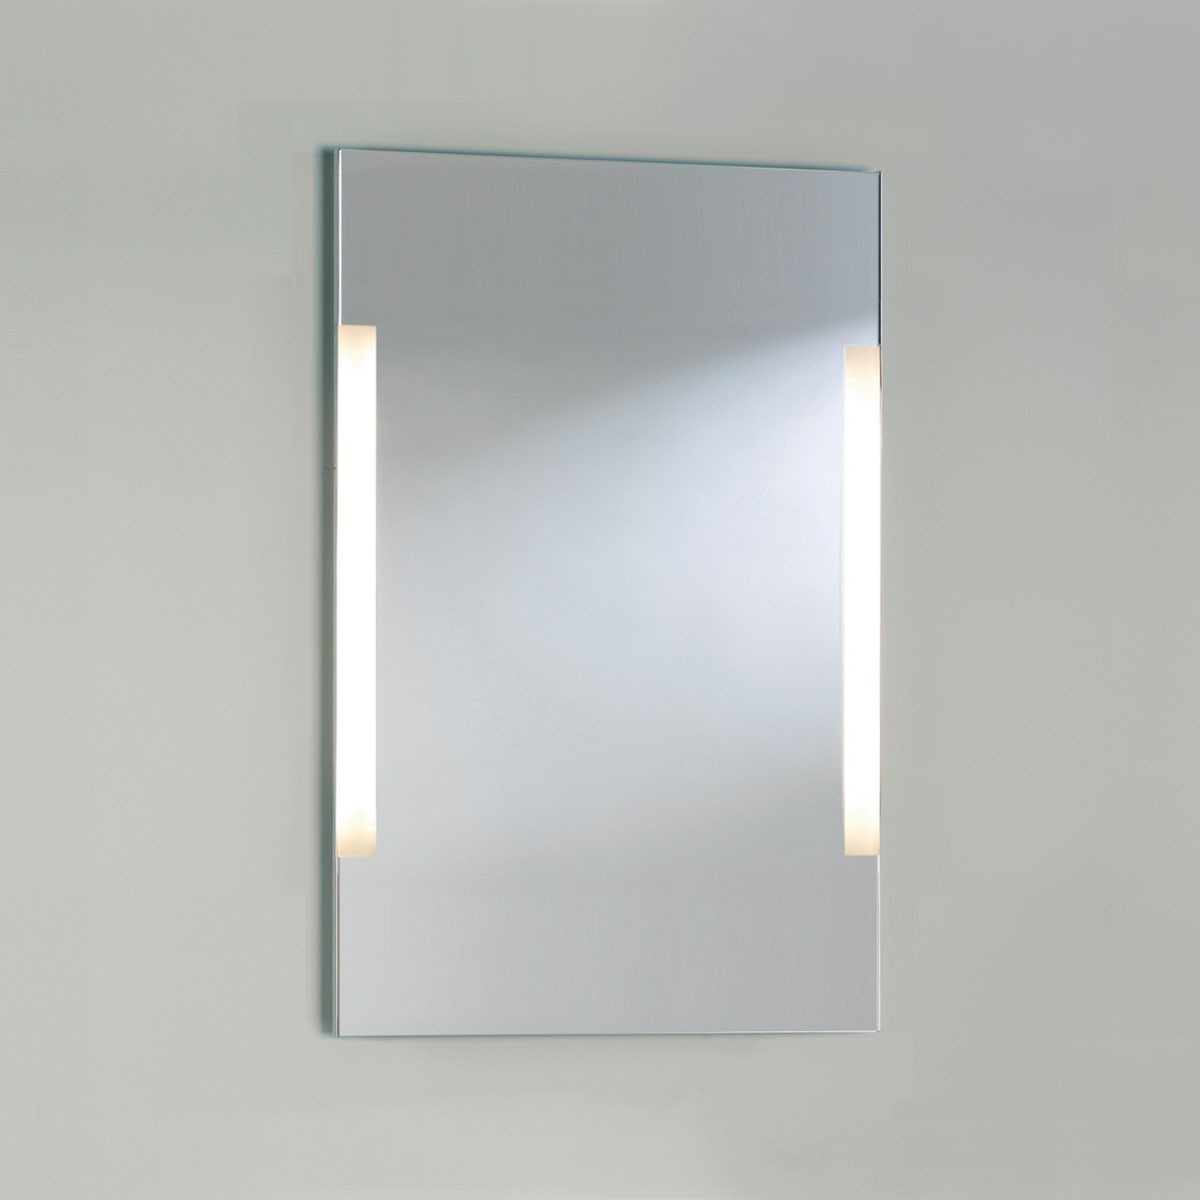 Astro Imola 900 Polished Chrome Bathroom Mirror Light At Uk Electrical Supplies